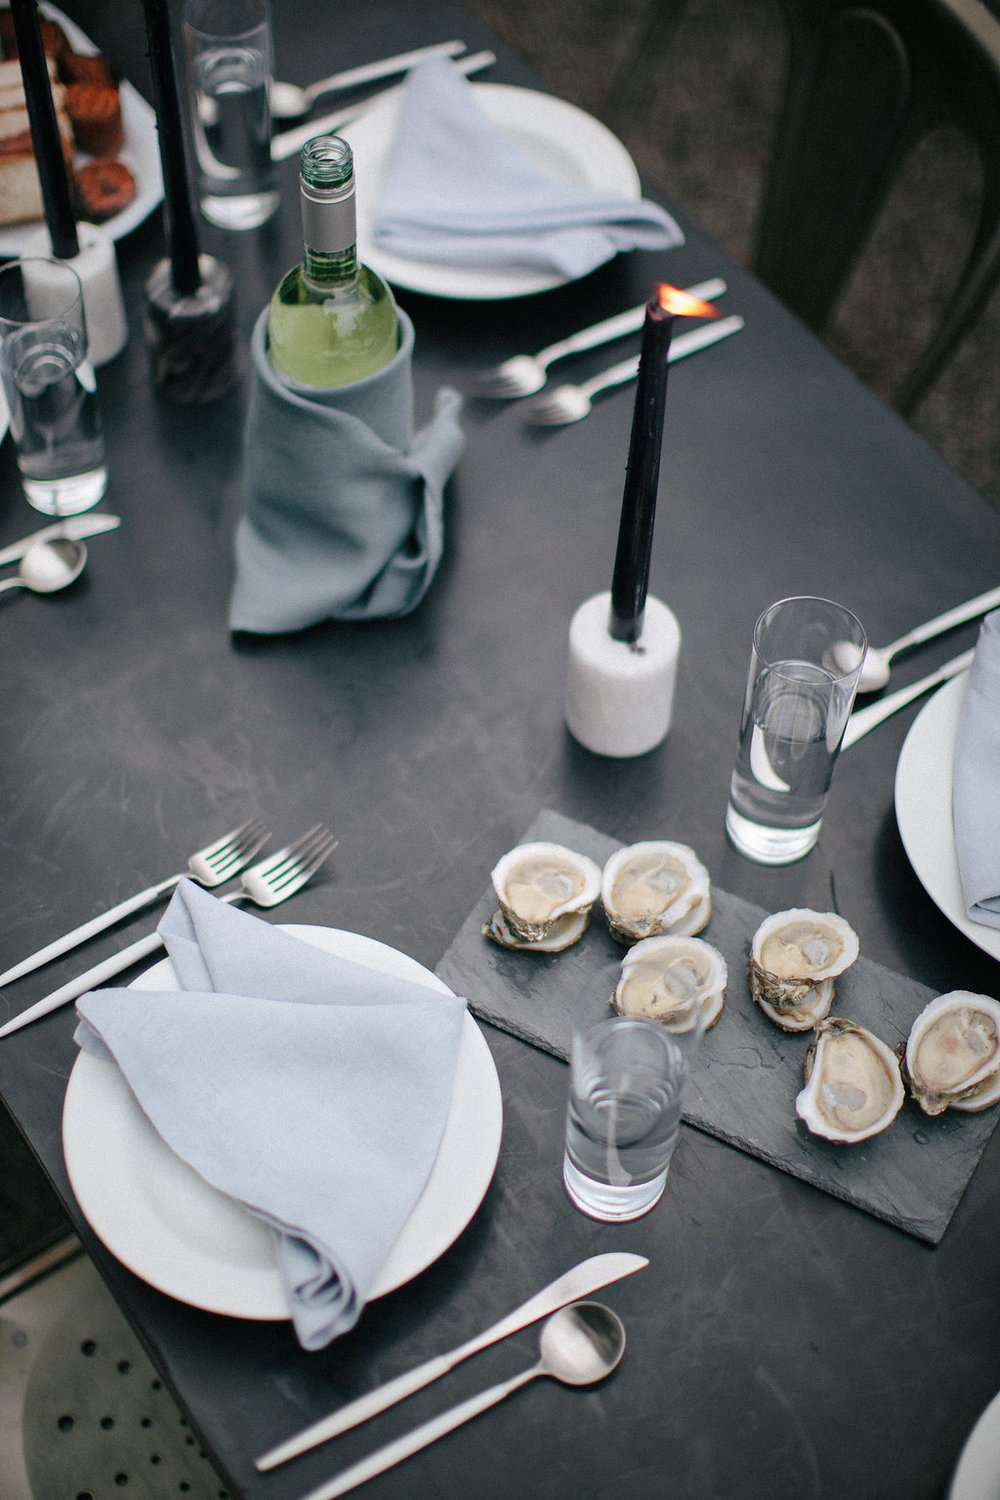 12th-Table-WEDDING-RENTALS-NASHVILLE-Design-Tips-Hosting-ENTERTAINING-Series-HowIHost-Wine-Photograph #